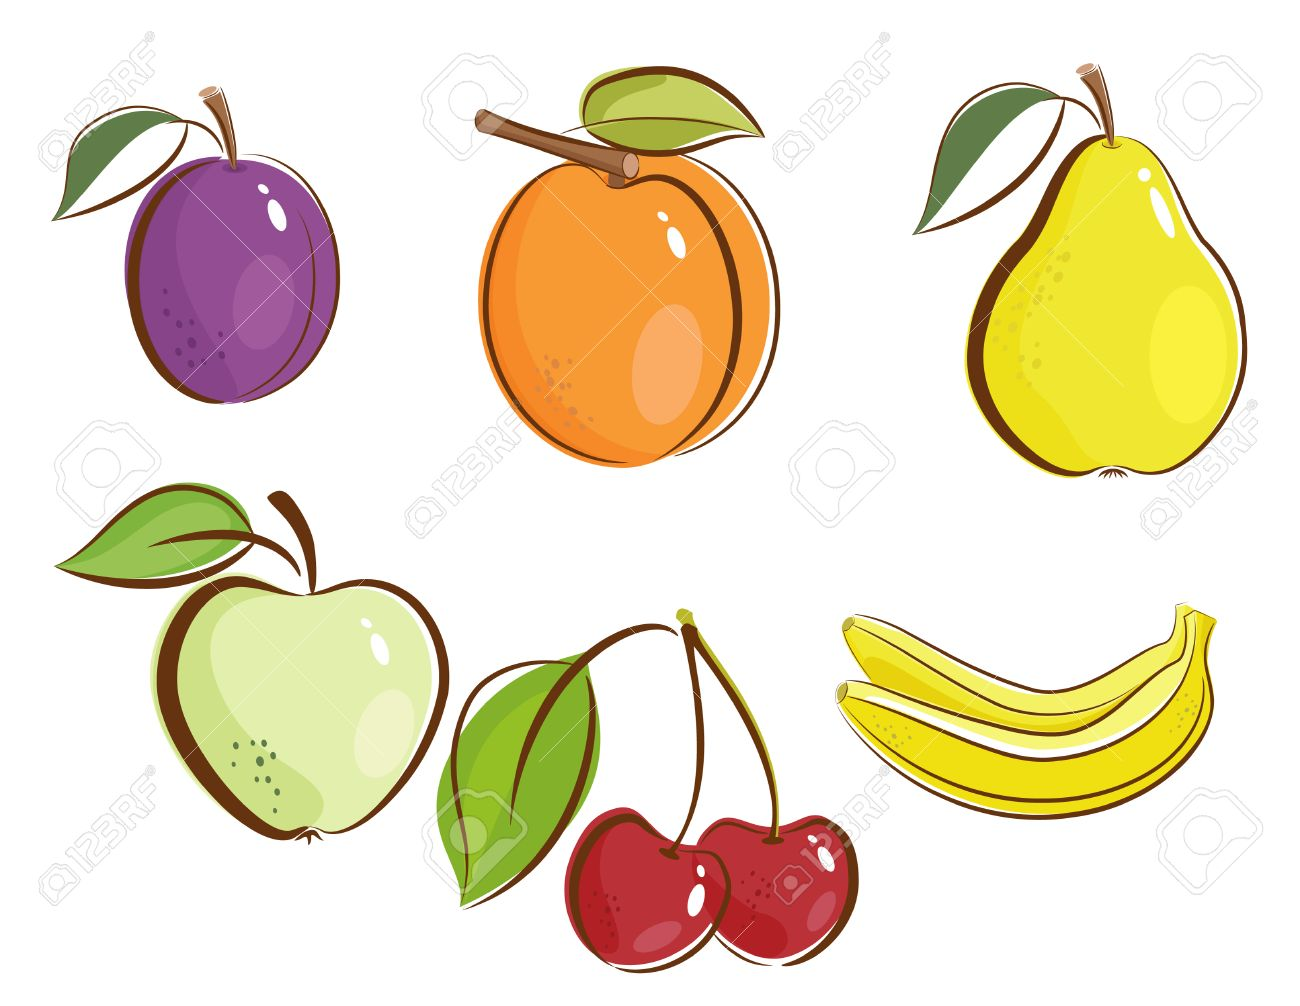 fruits clipart icons royalty free cliparts vectors and stock rh 123rf com fruit clip art to color fruit clipart black and white